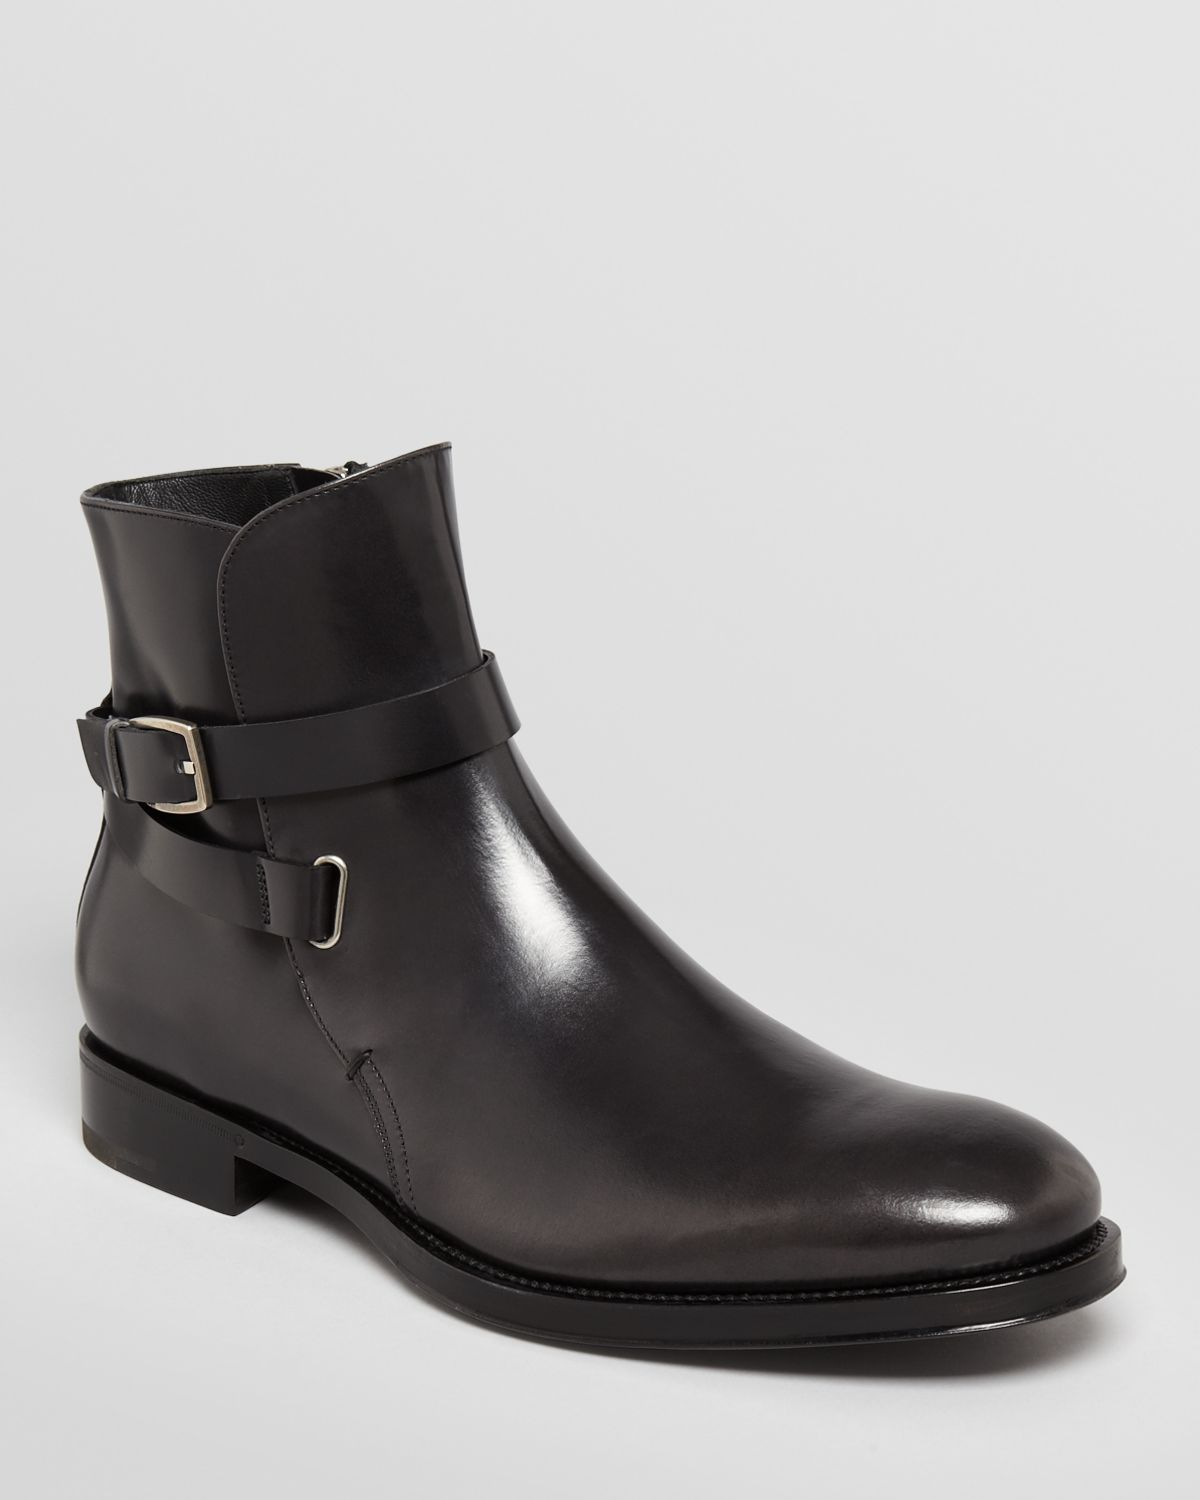 ferragamo saverio buckle leather boots in black for lyst